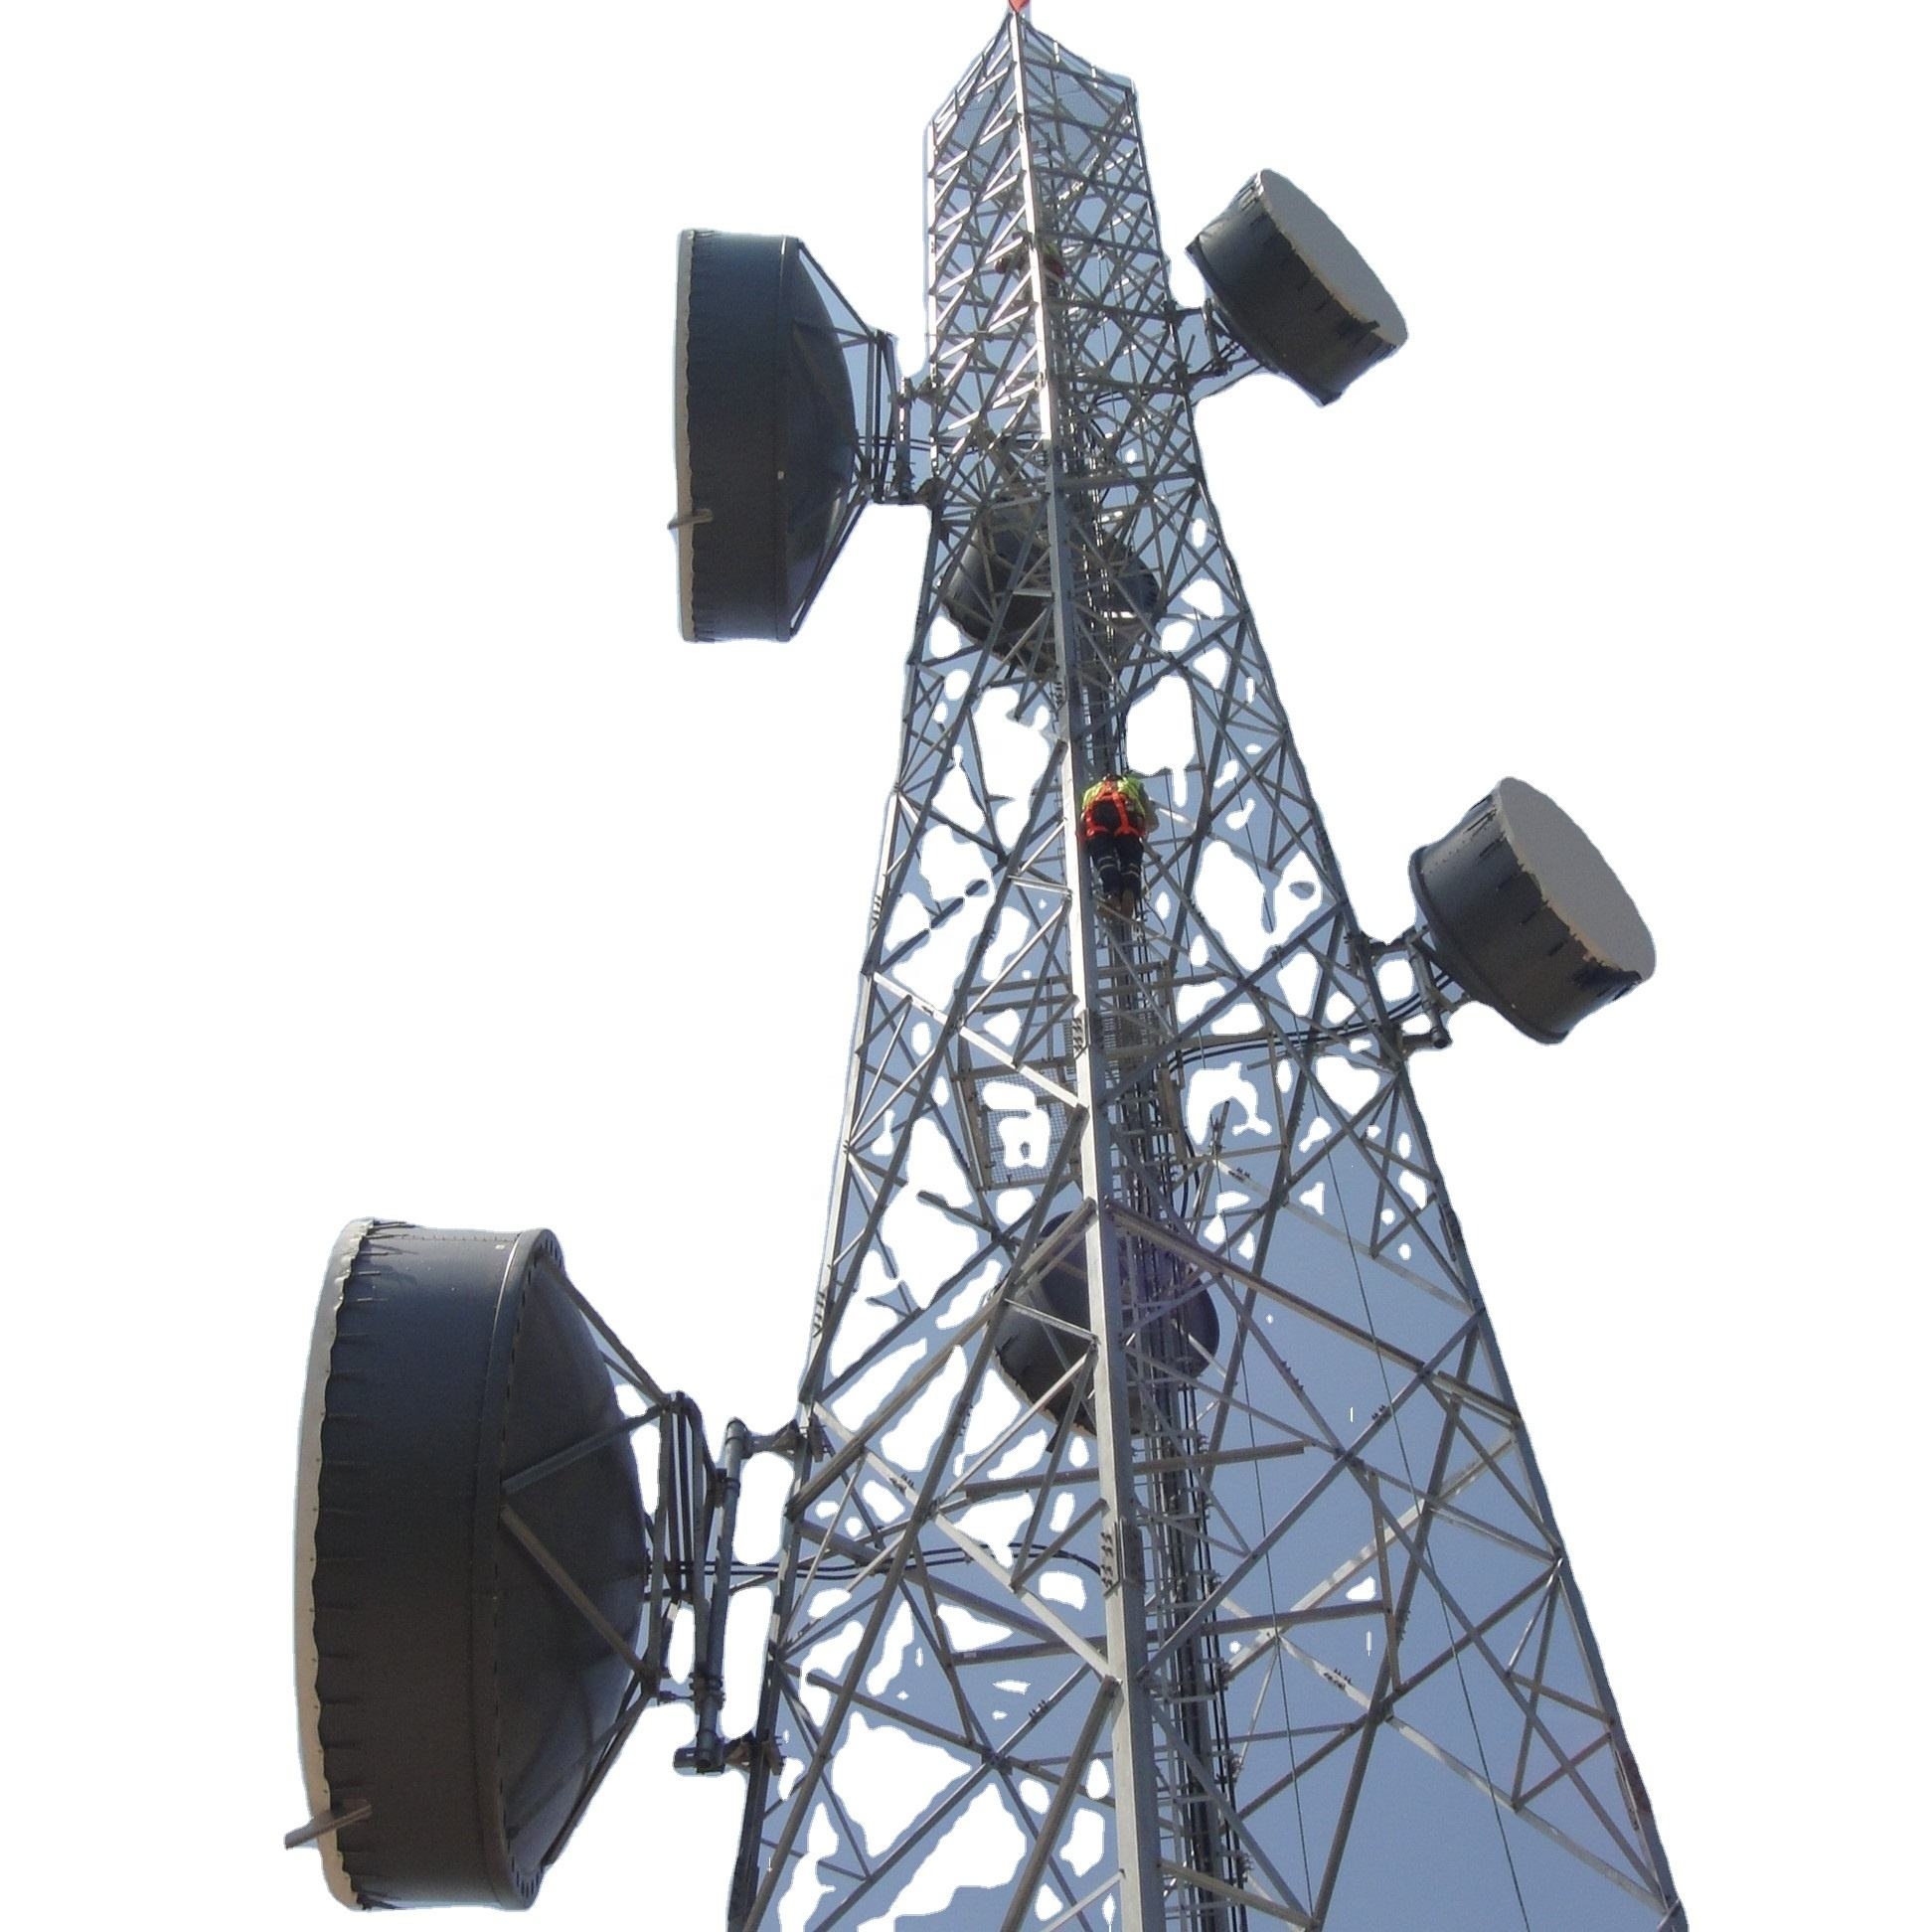 4legs 4 Four Leg Legs Legged Telecom Telecommunication Communication Angular Steel Self Supporting Lattice Tower